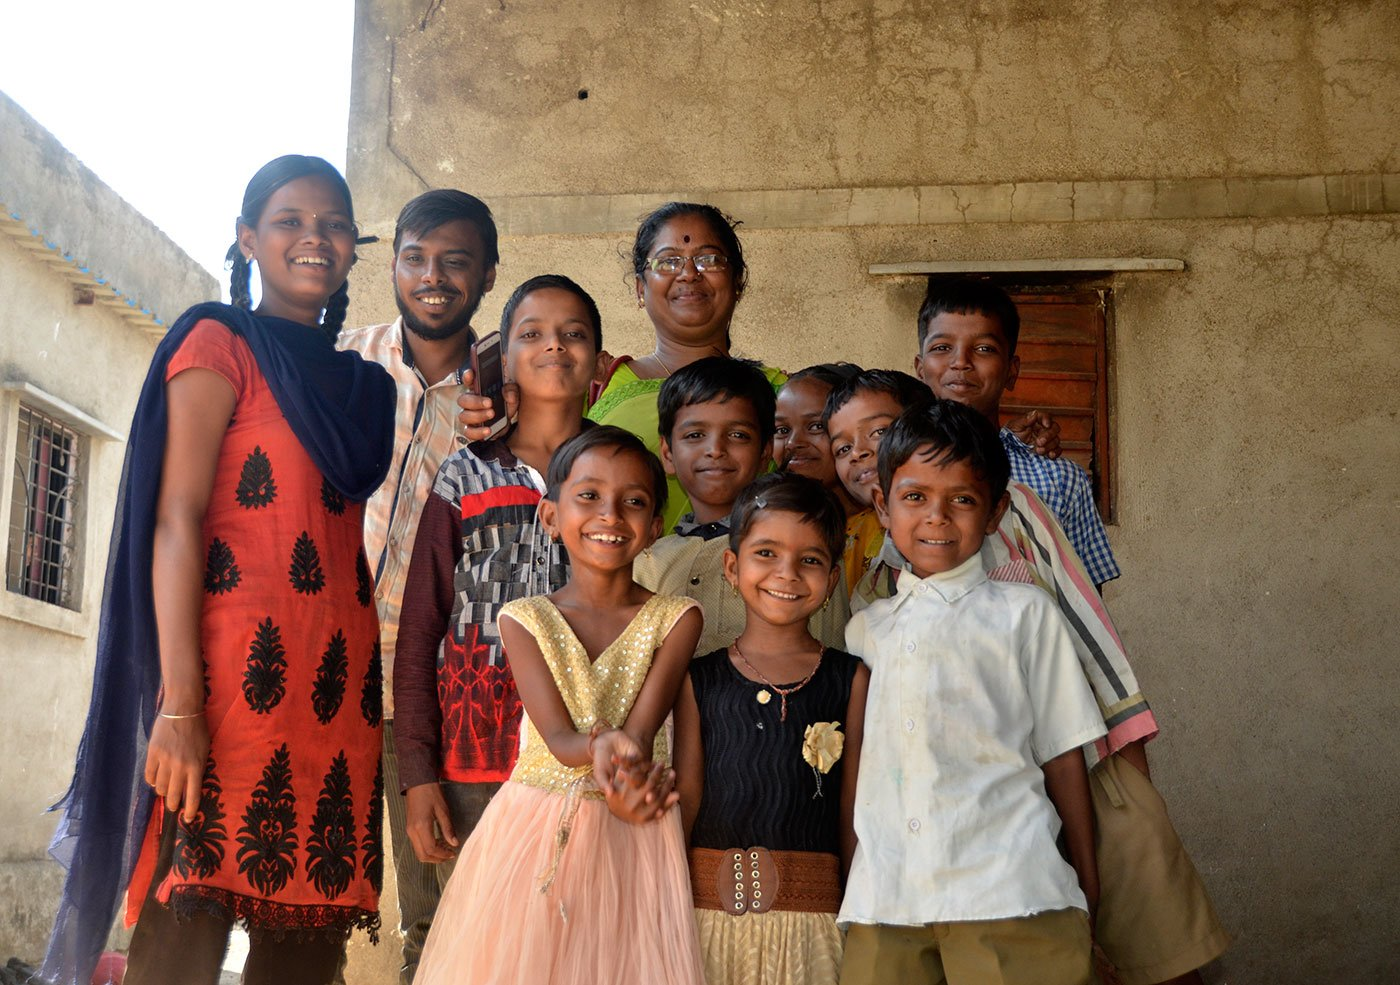 Sunita Bhosale in the Karade village with children from Pardhi community for whose education she works